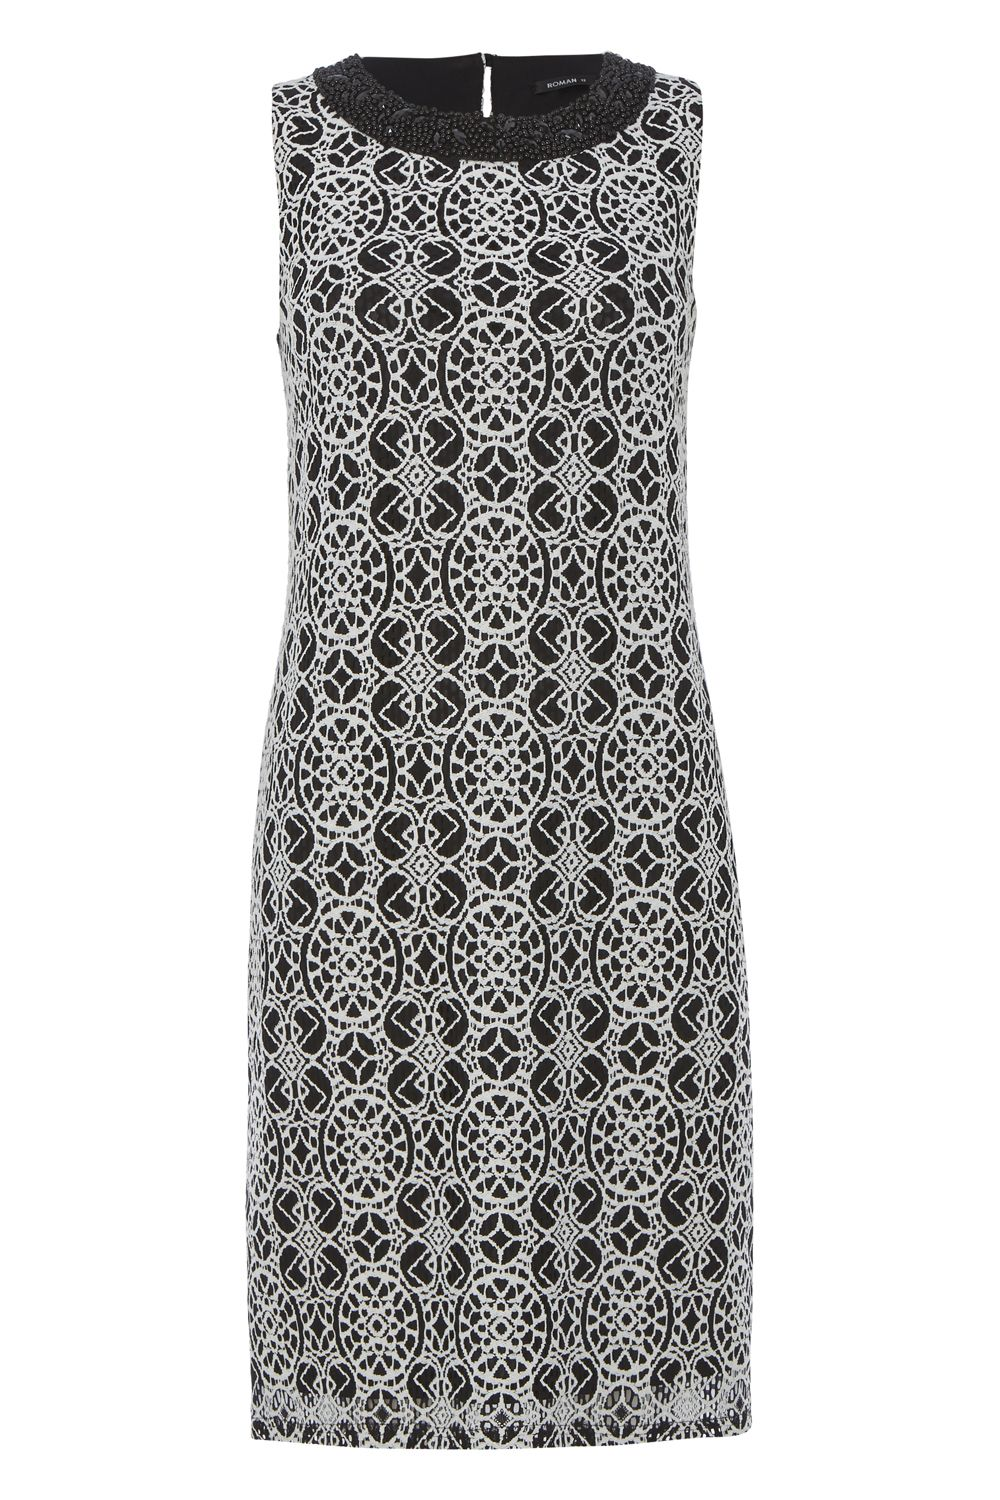 Roman Originals Embroidered Lace Shift Dress, Black